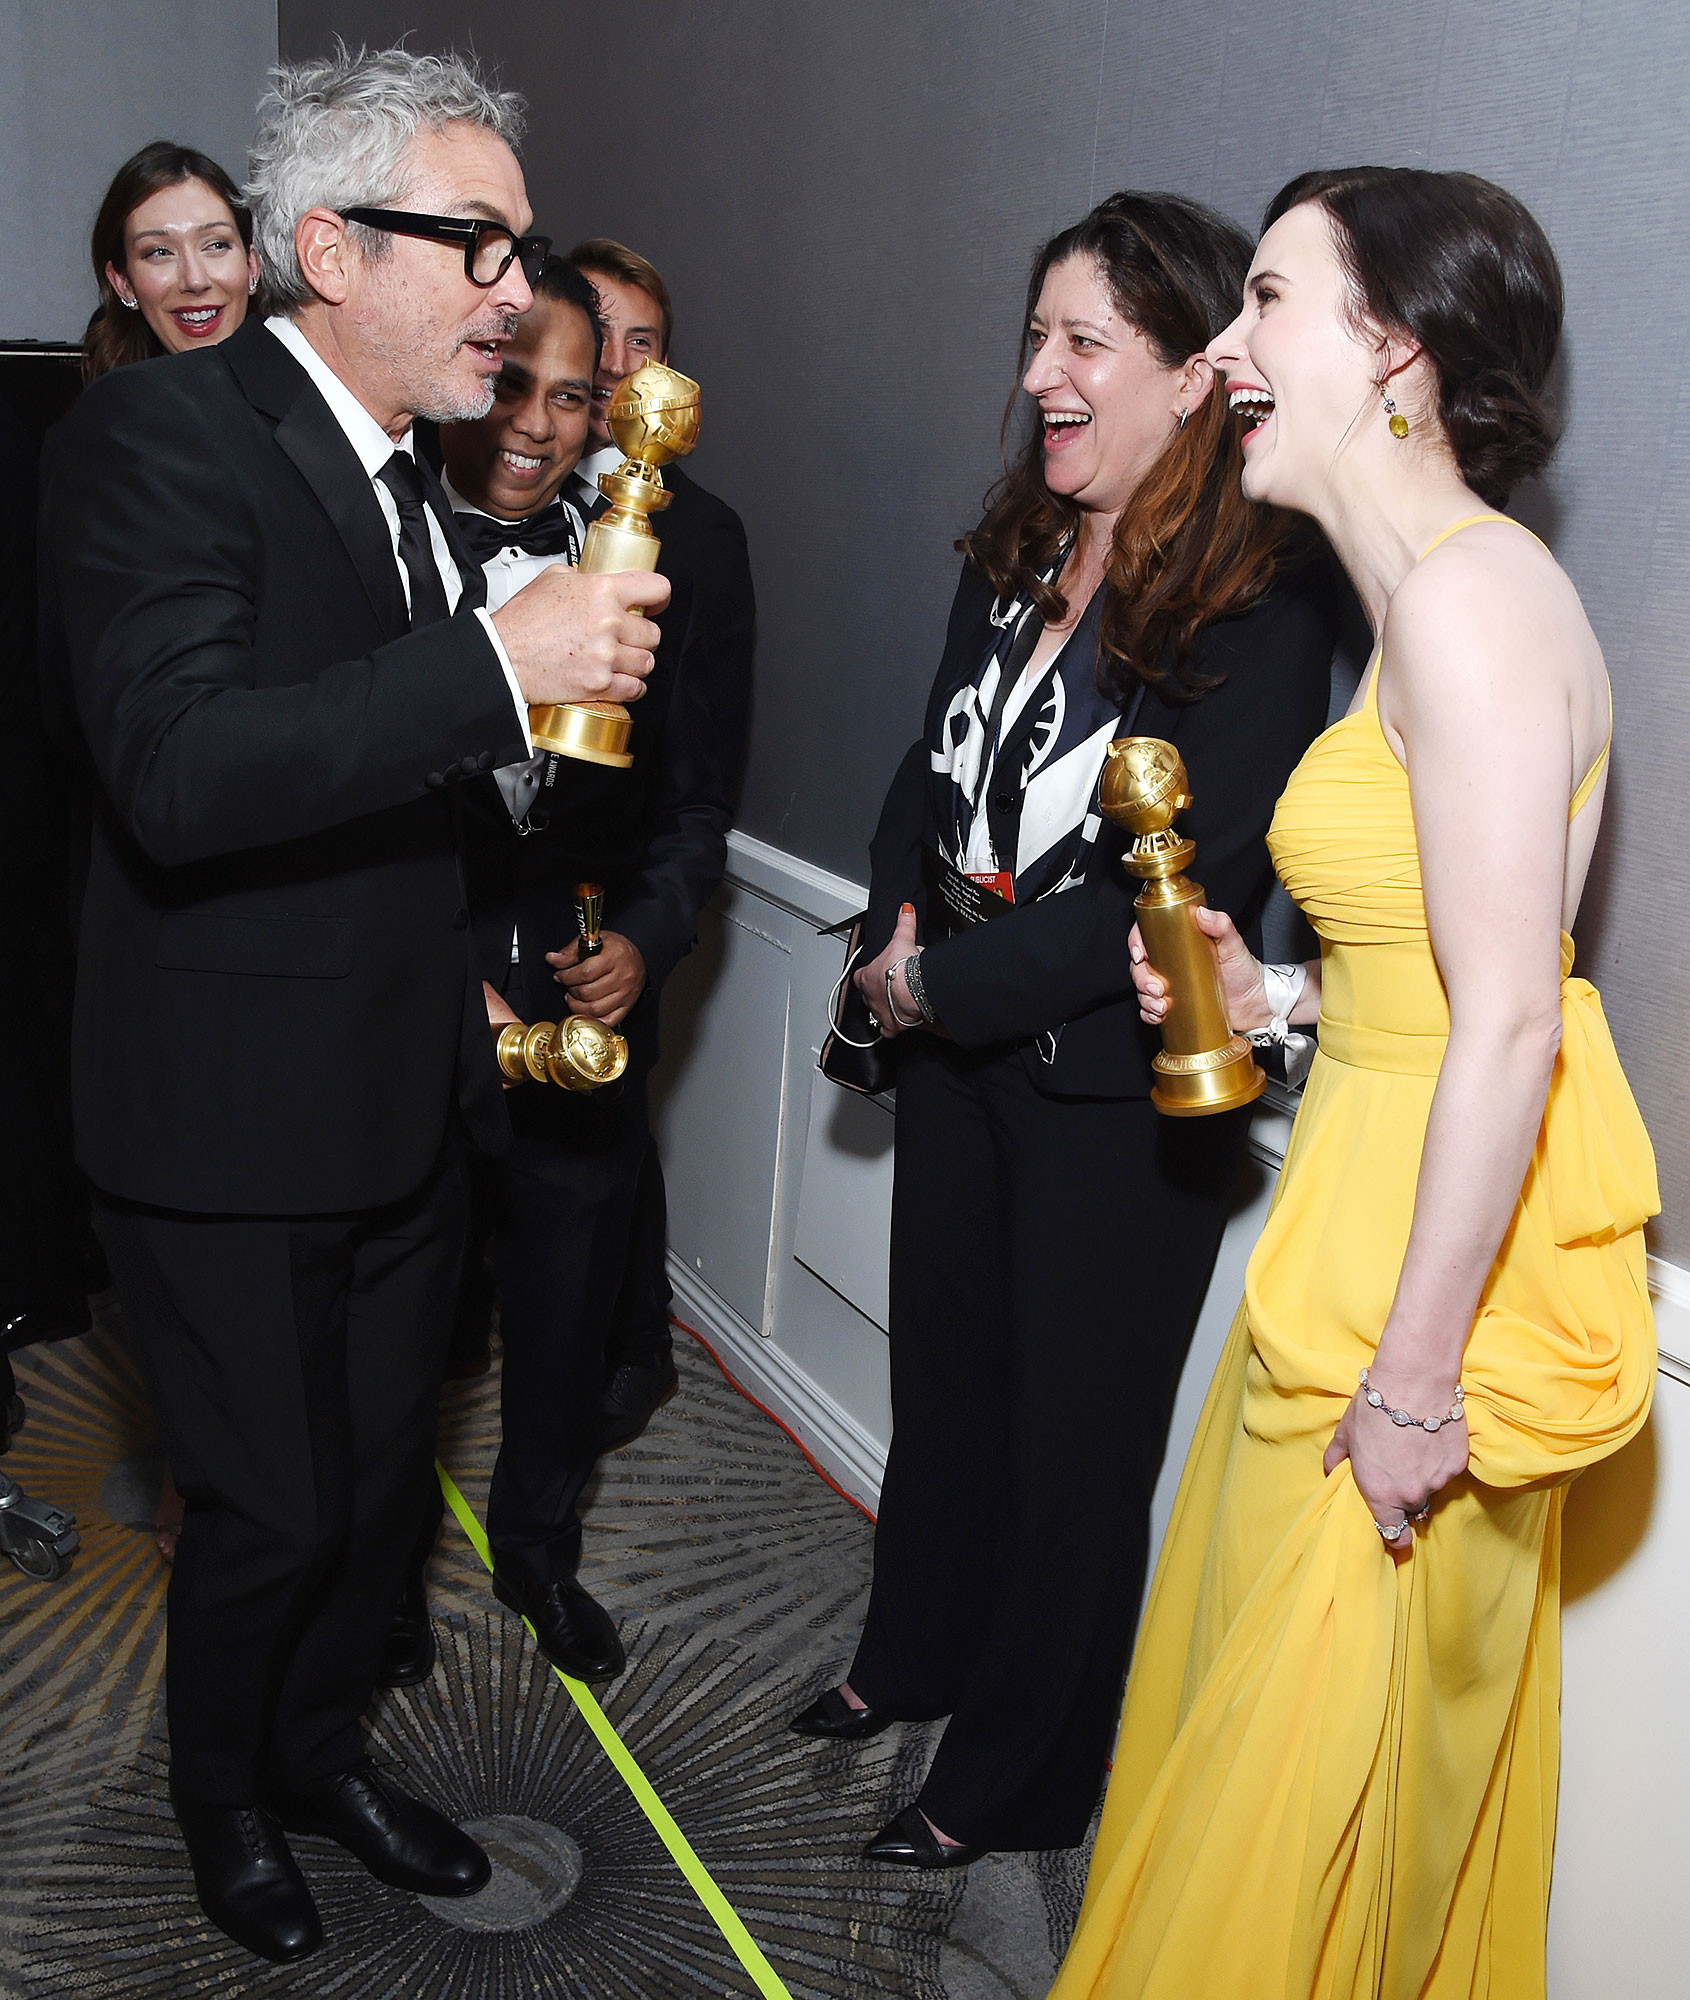 Inside Golden Globes 2019 Alfonso Cuaron Rachel Brosnahan - Alfonso Cuarón and Rachel Brosnahan bumped into each other backstage and held up their respective awards for best director ( Roma ) and best actress in a TV musical or comedy ( The Marvelous Mrs. Maisel ).